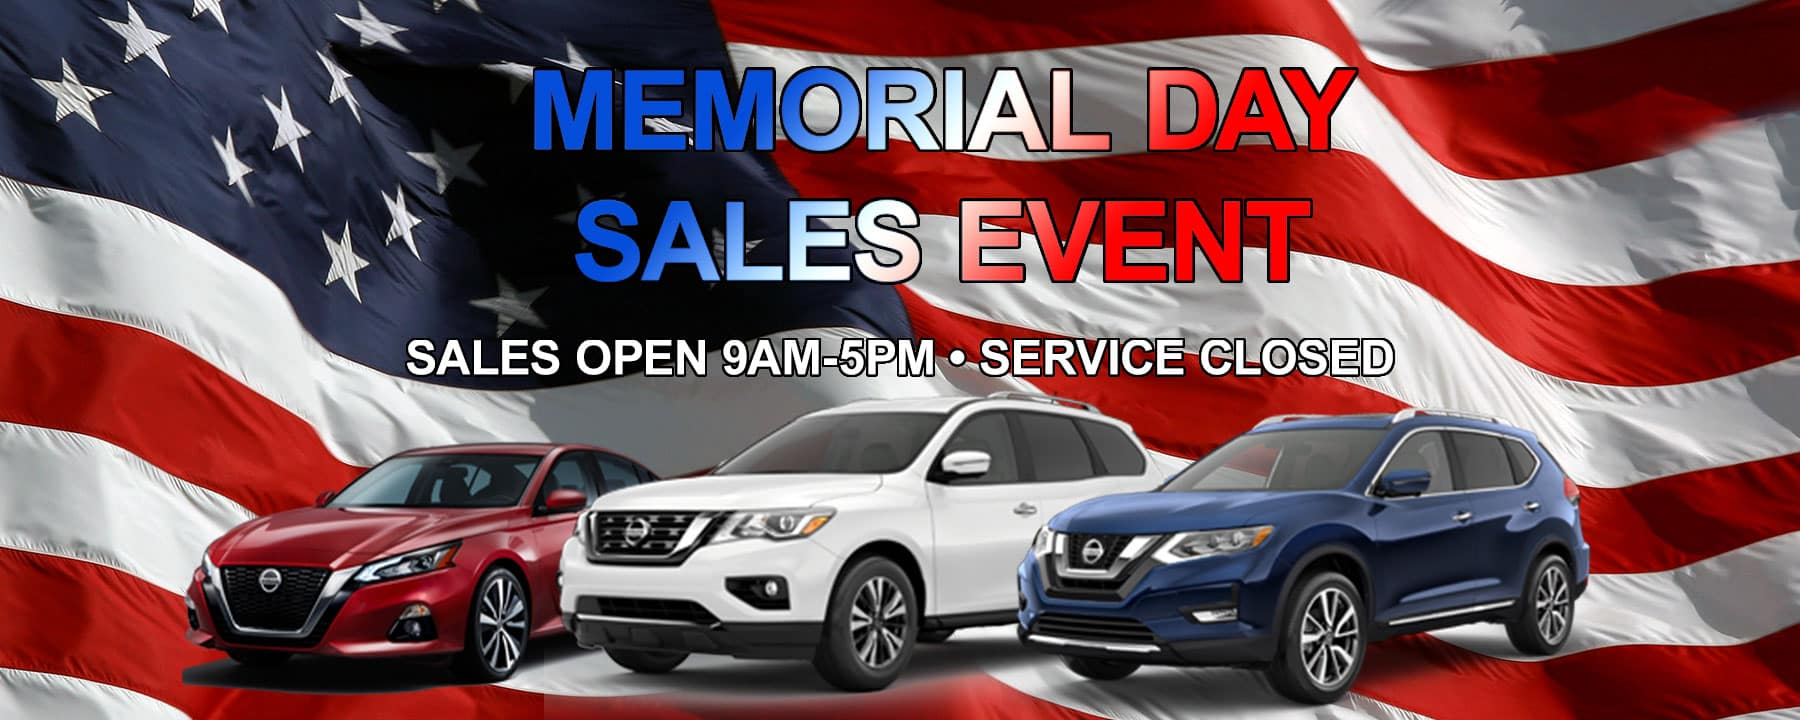 Memorial Day Sales Event Hours at Star Nissan!